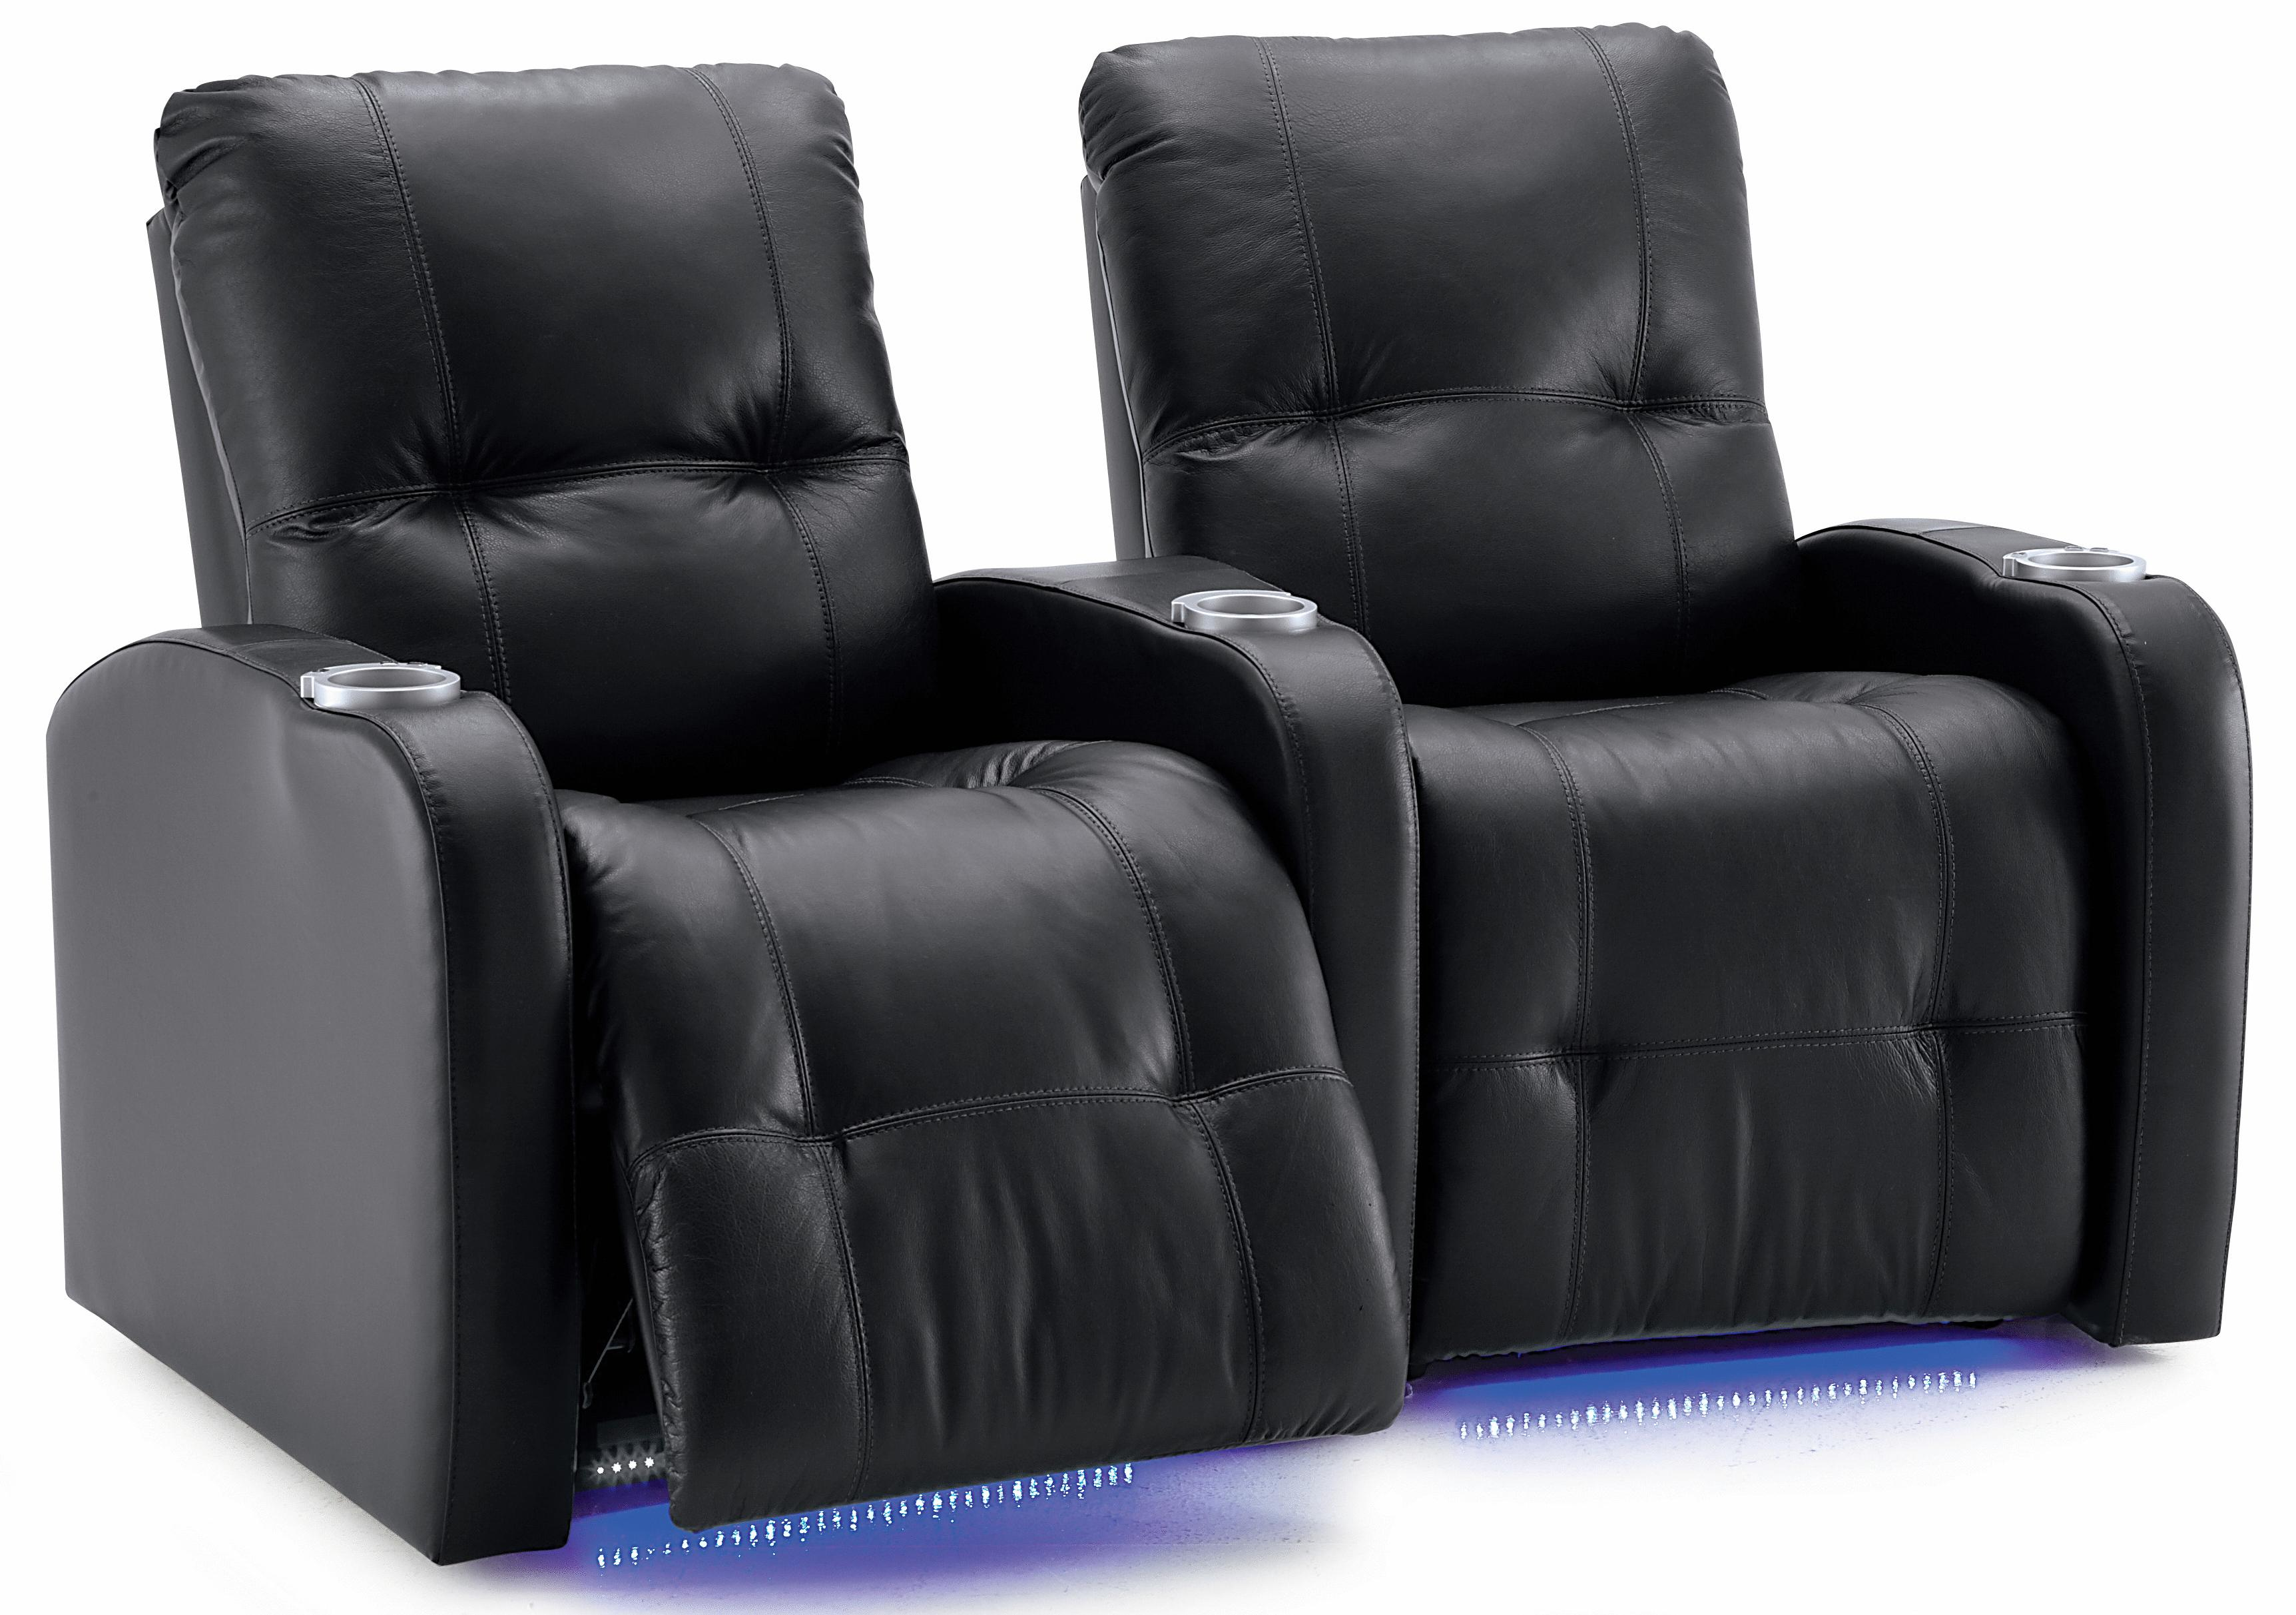 Palliser Auxiliary Manual Theater Seating - Item Number: 41450-2R+6R